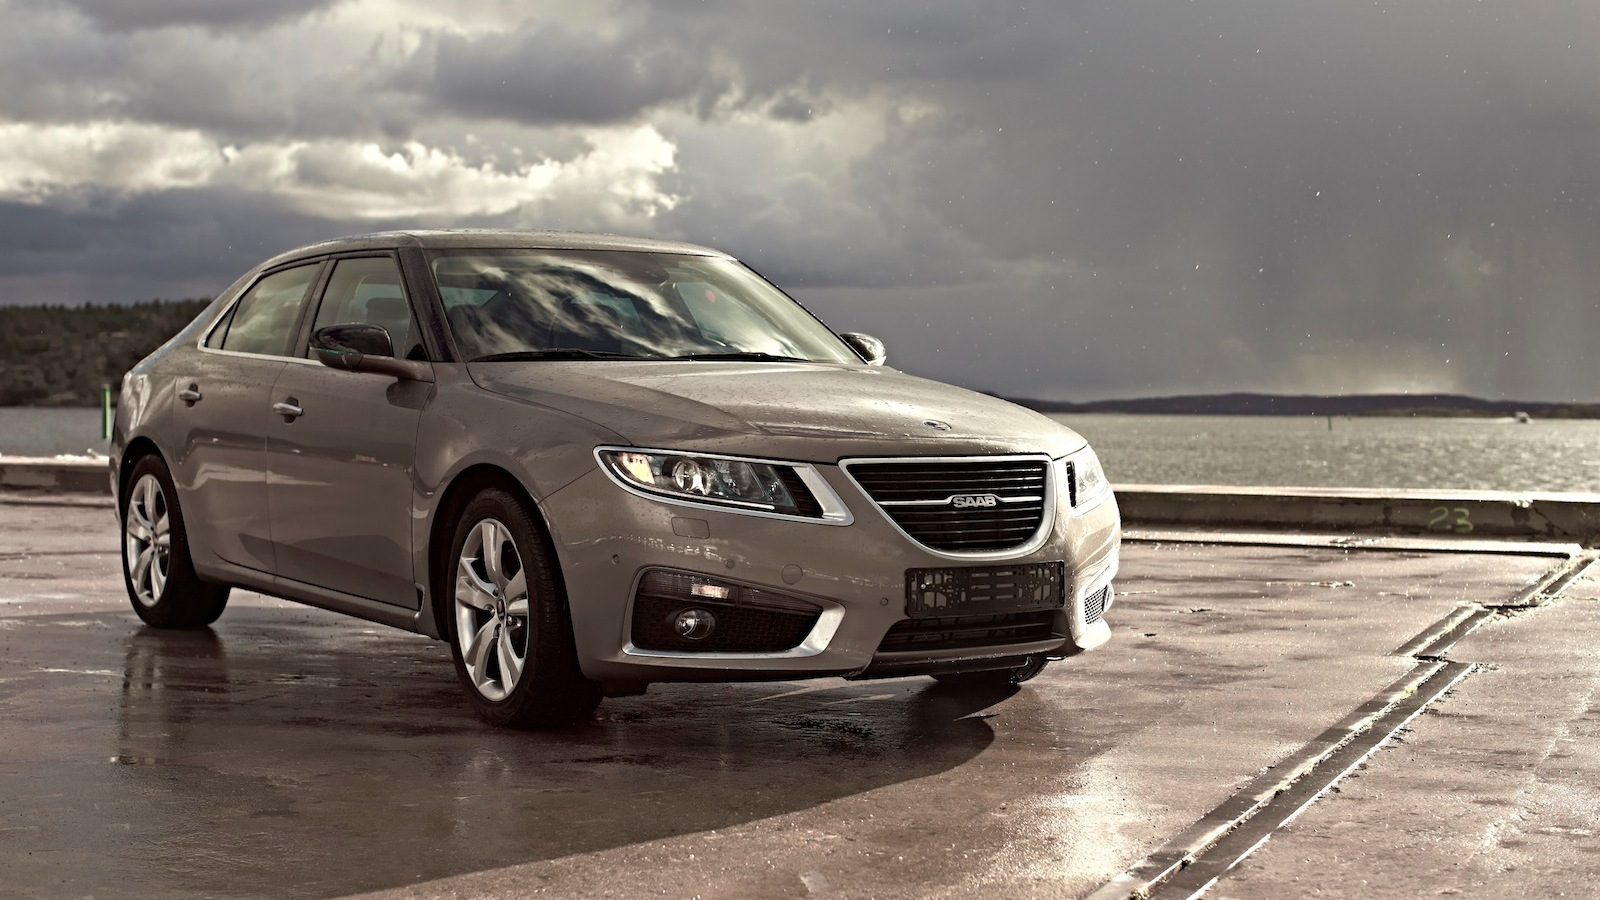 2012 Saab 9-5 Sedan - image: KVD Auctions